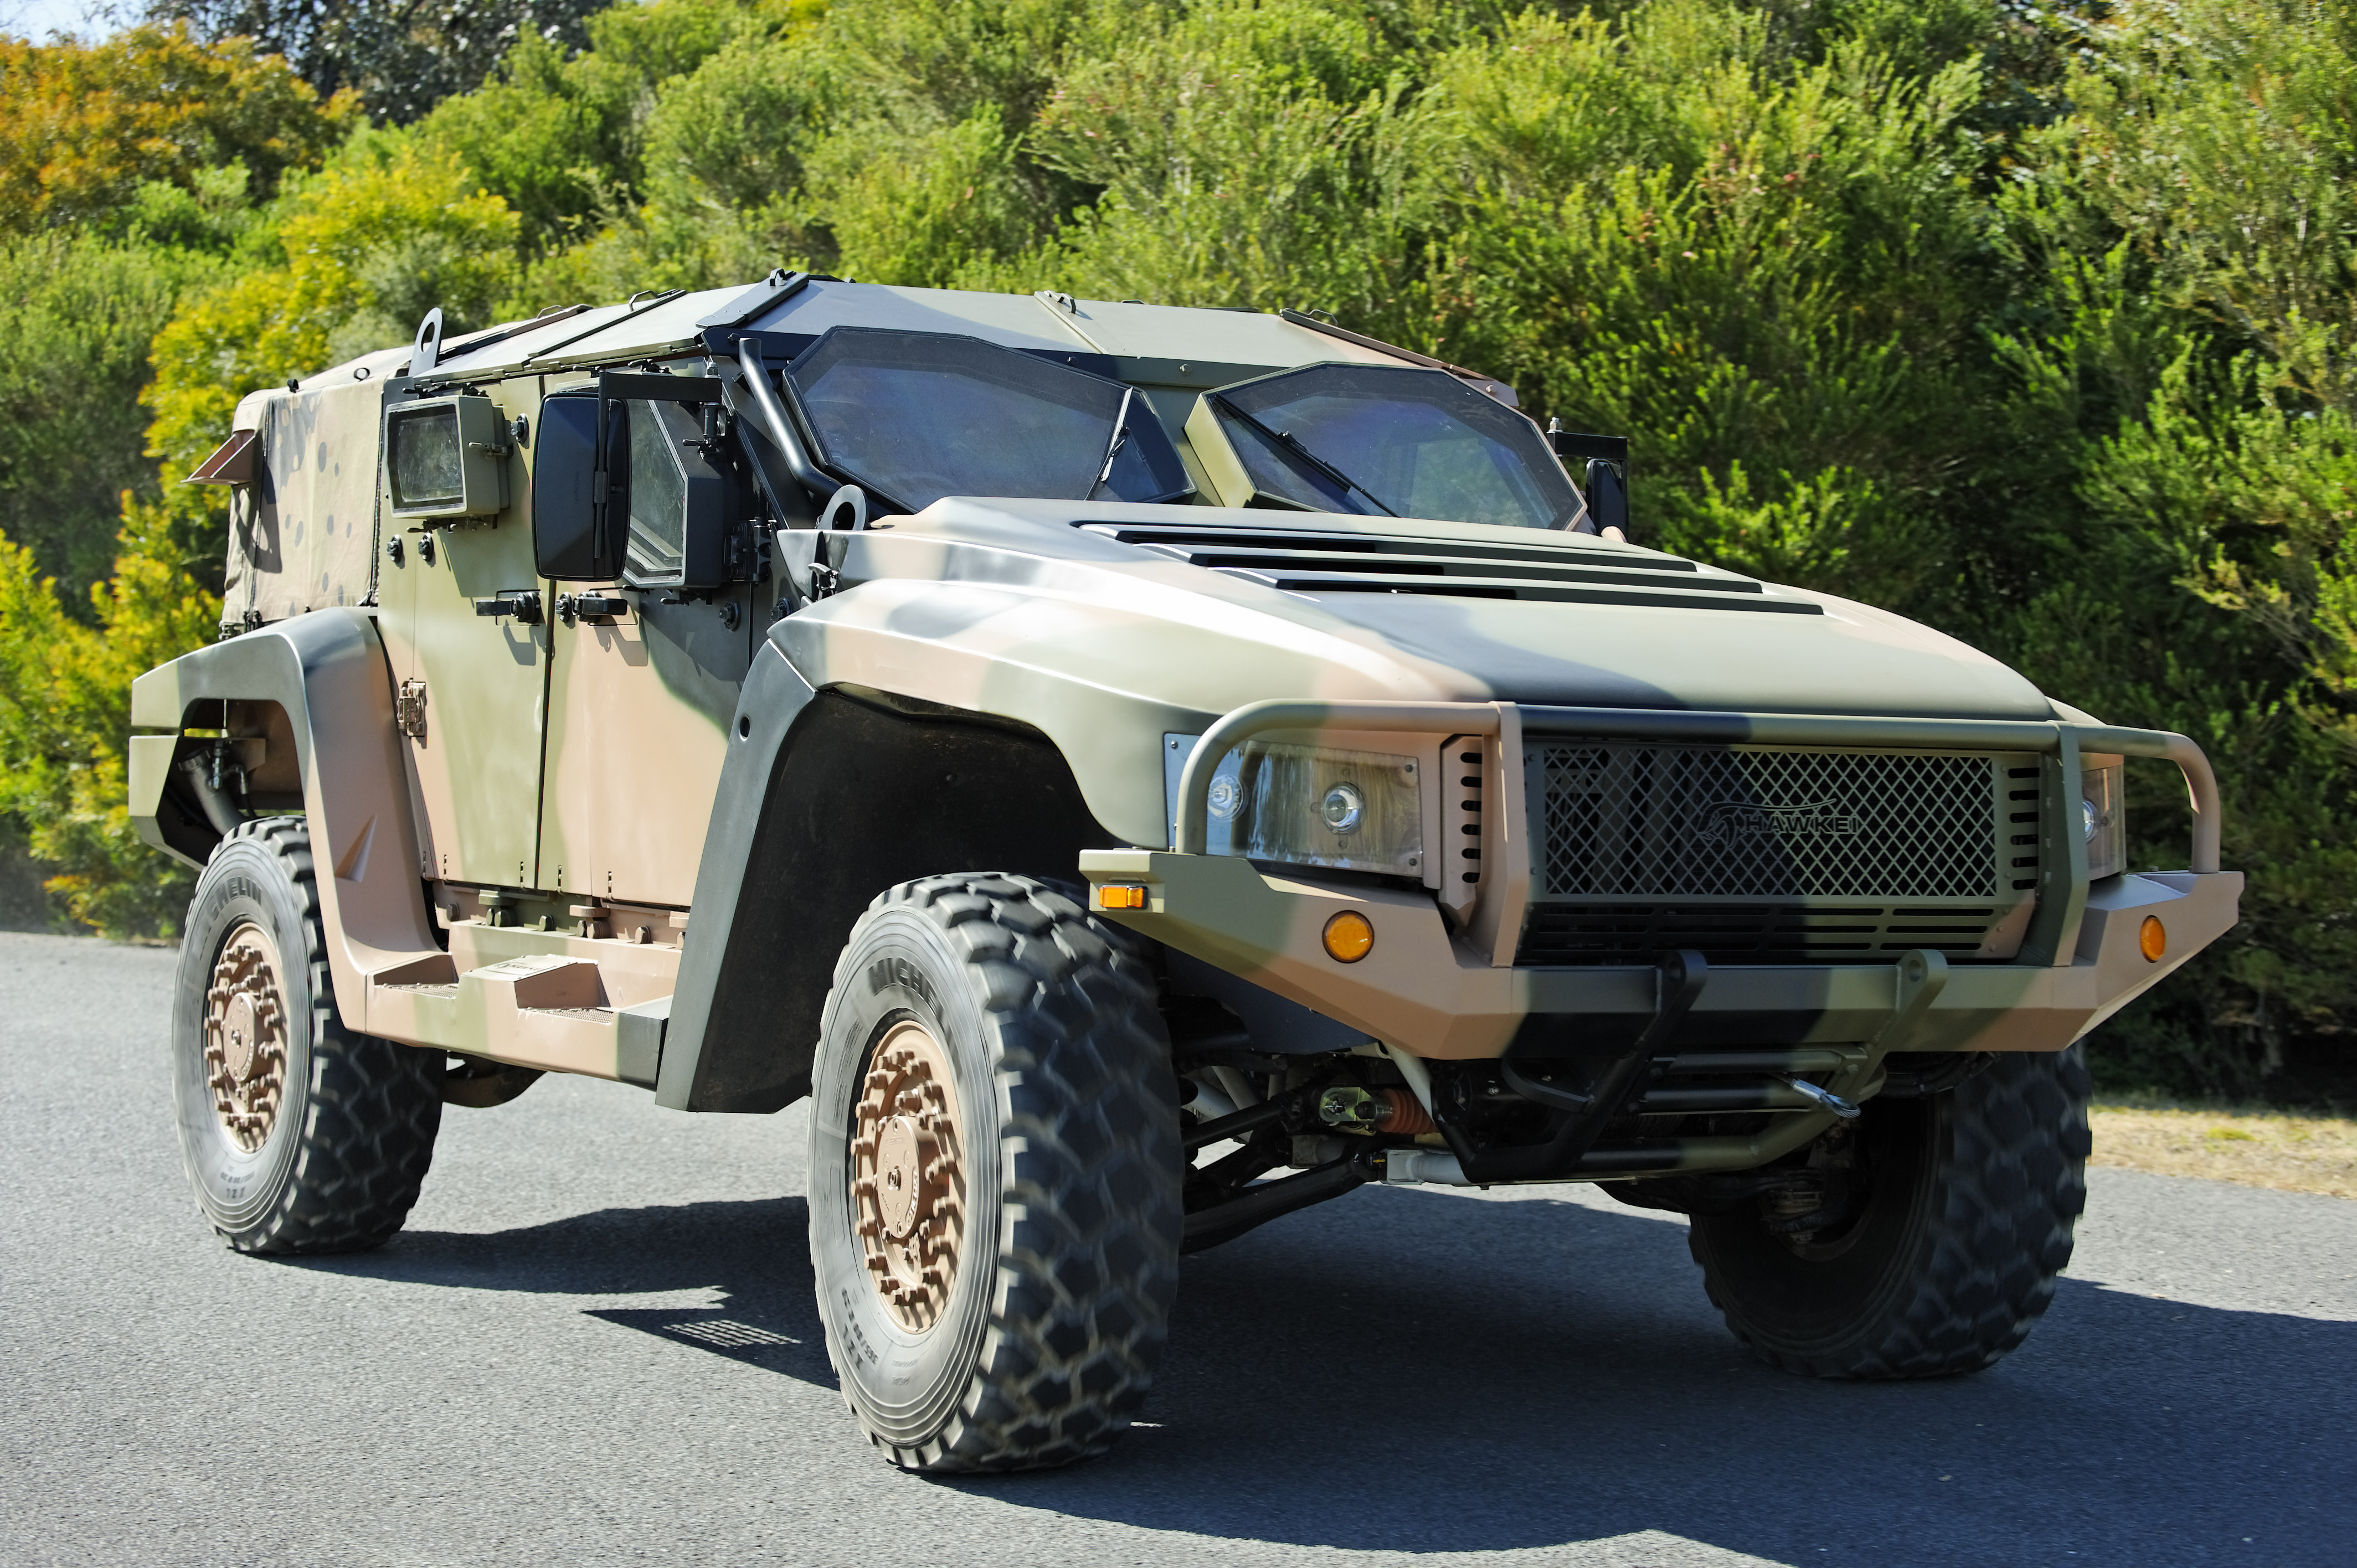 The Hawkei is Thales' next generation Protected Mobility Vehicle